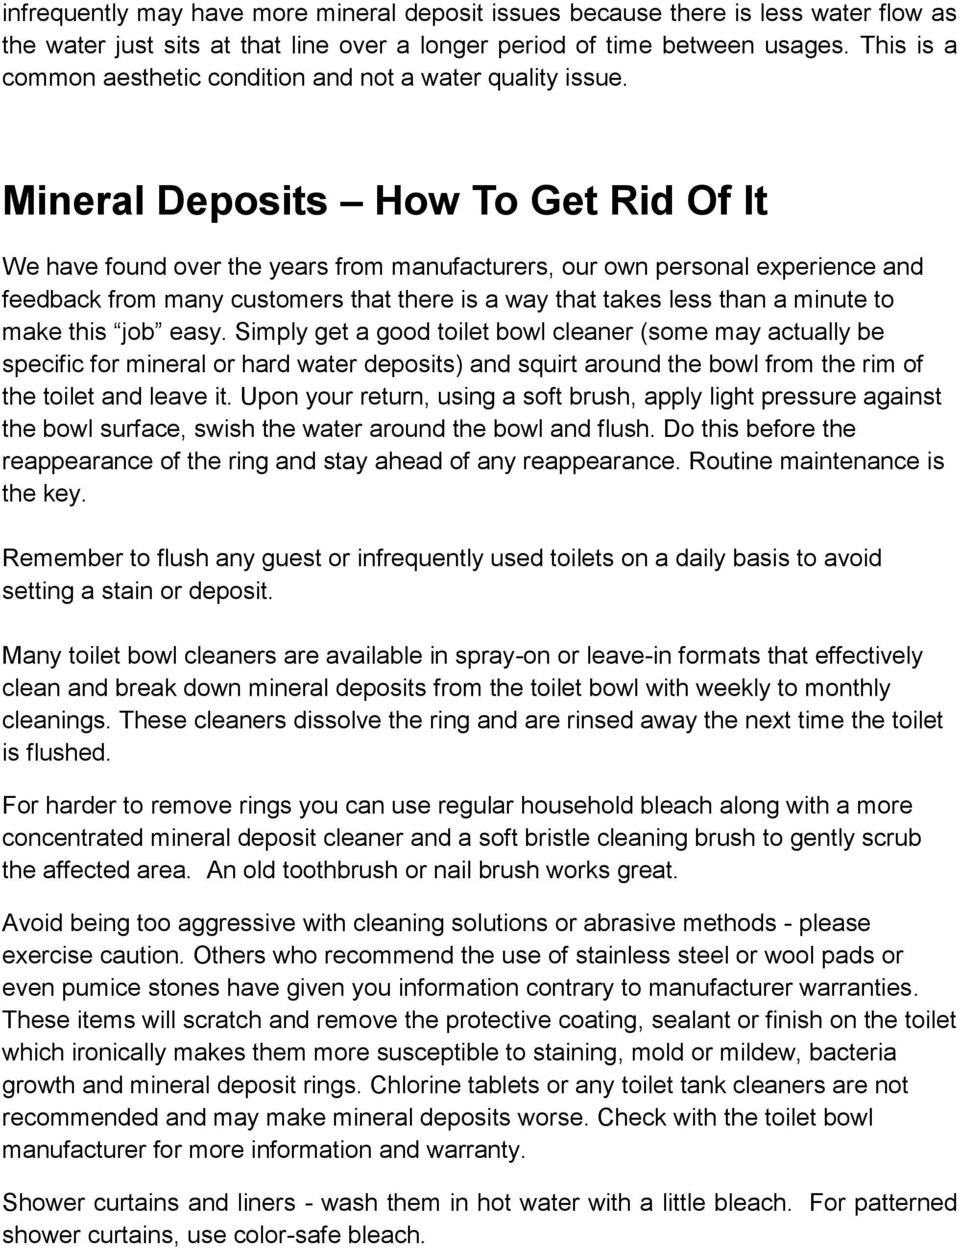 A Guide to Stains, Rings, Discoloration, Mineral Deposits: What They ...